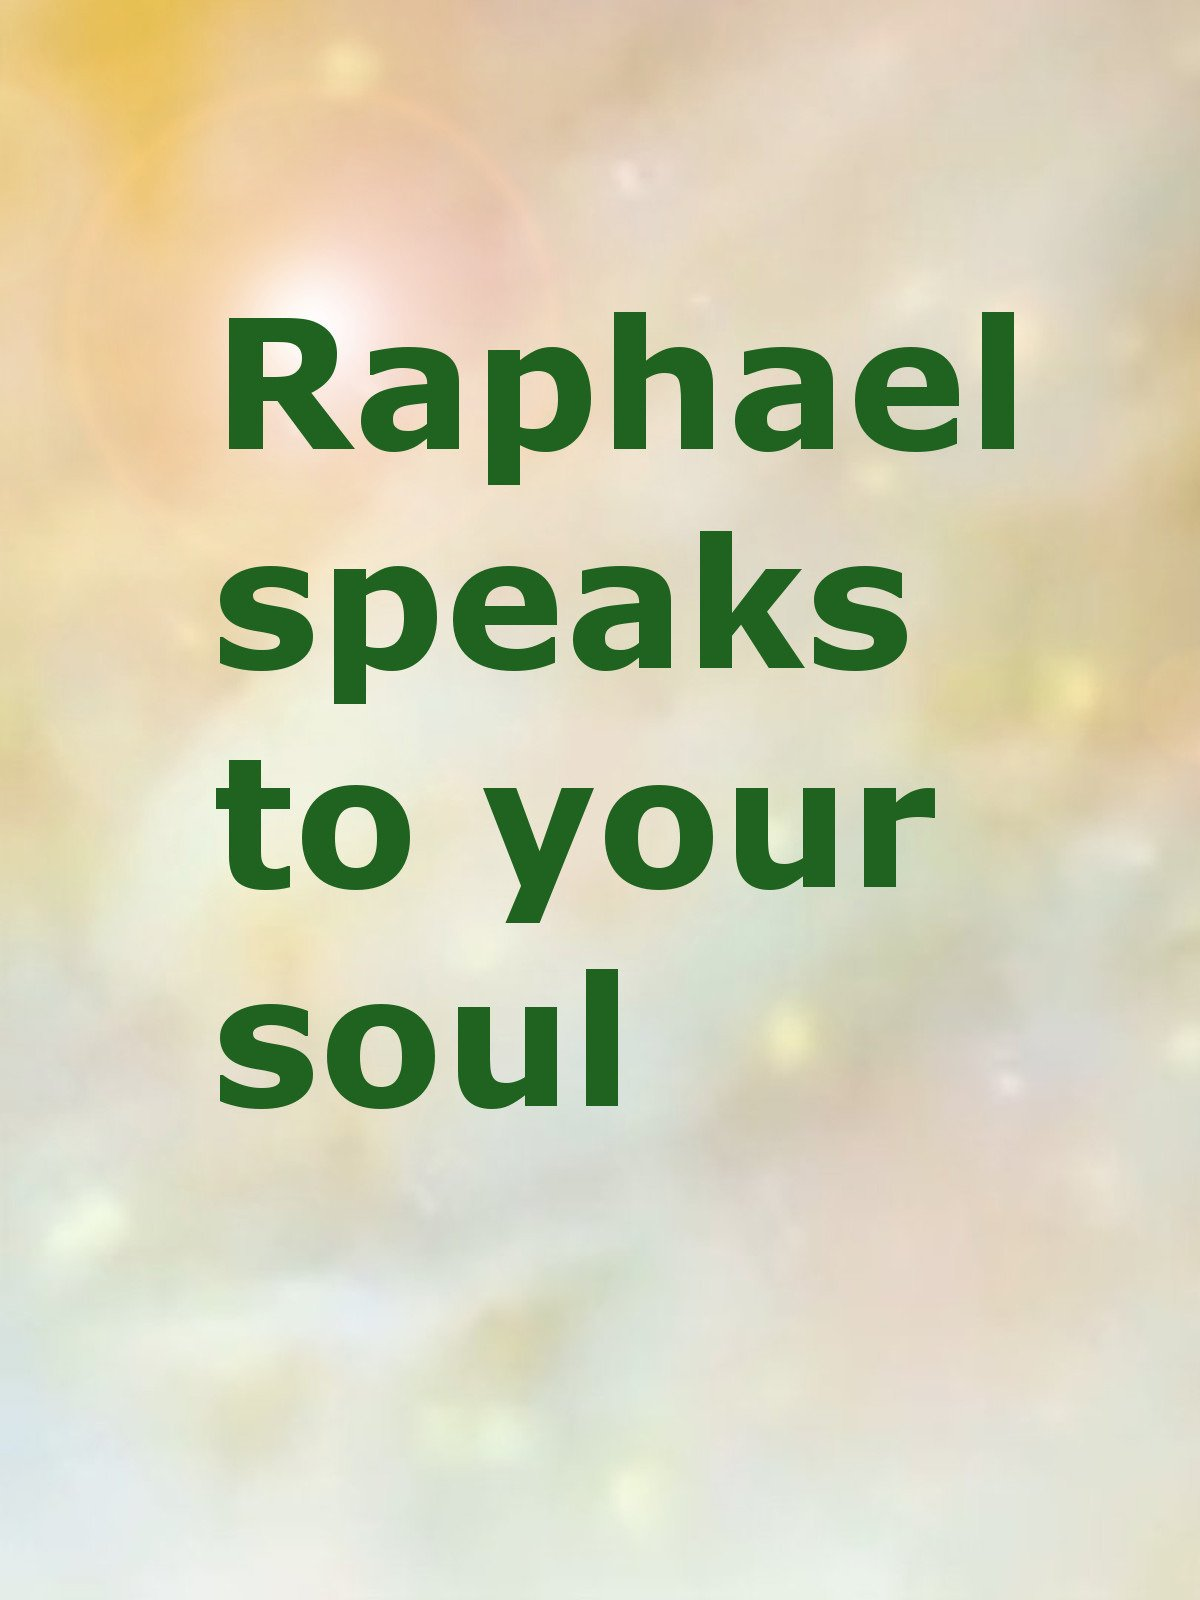 Rapheal speaks to your soul